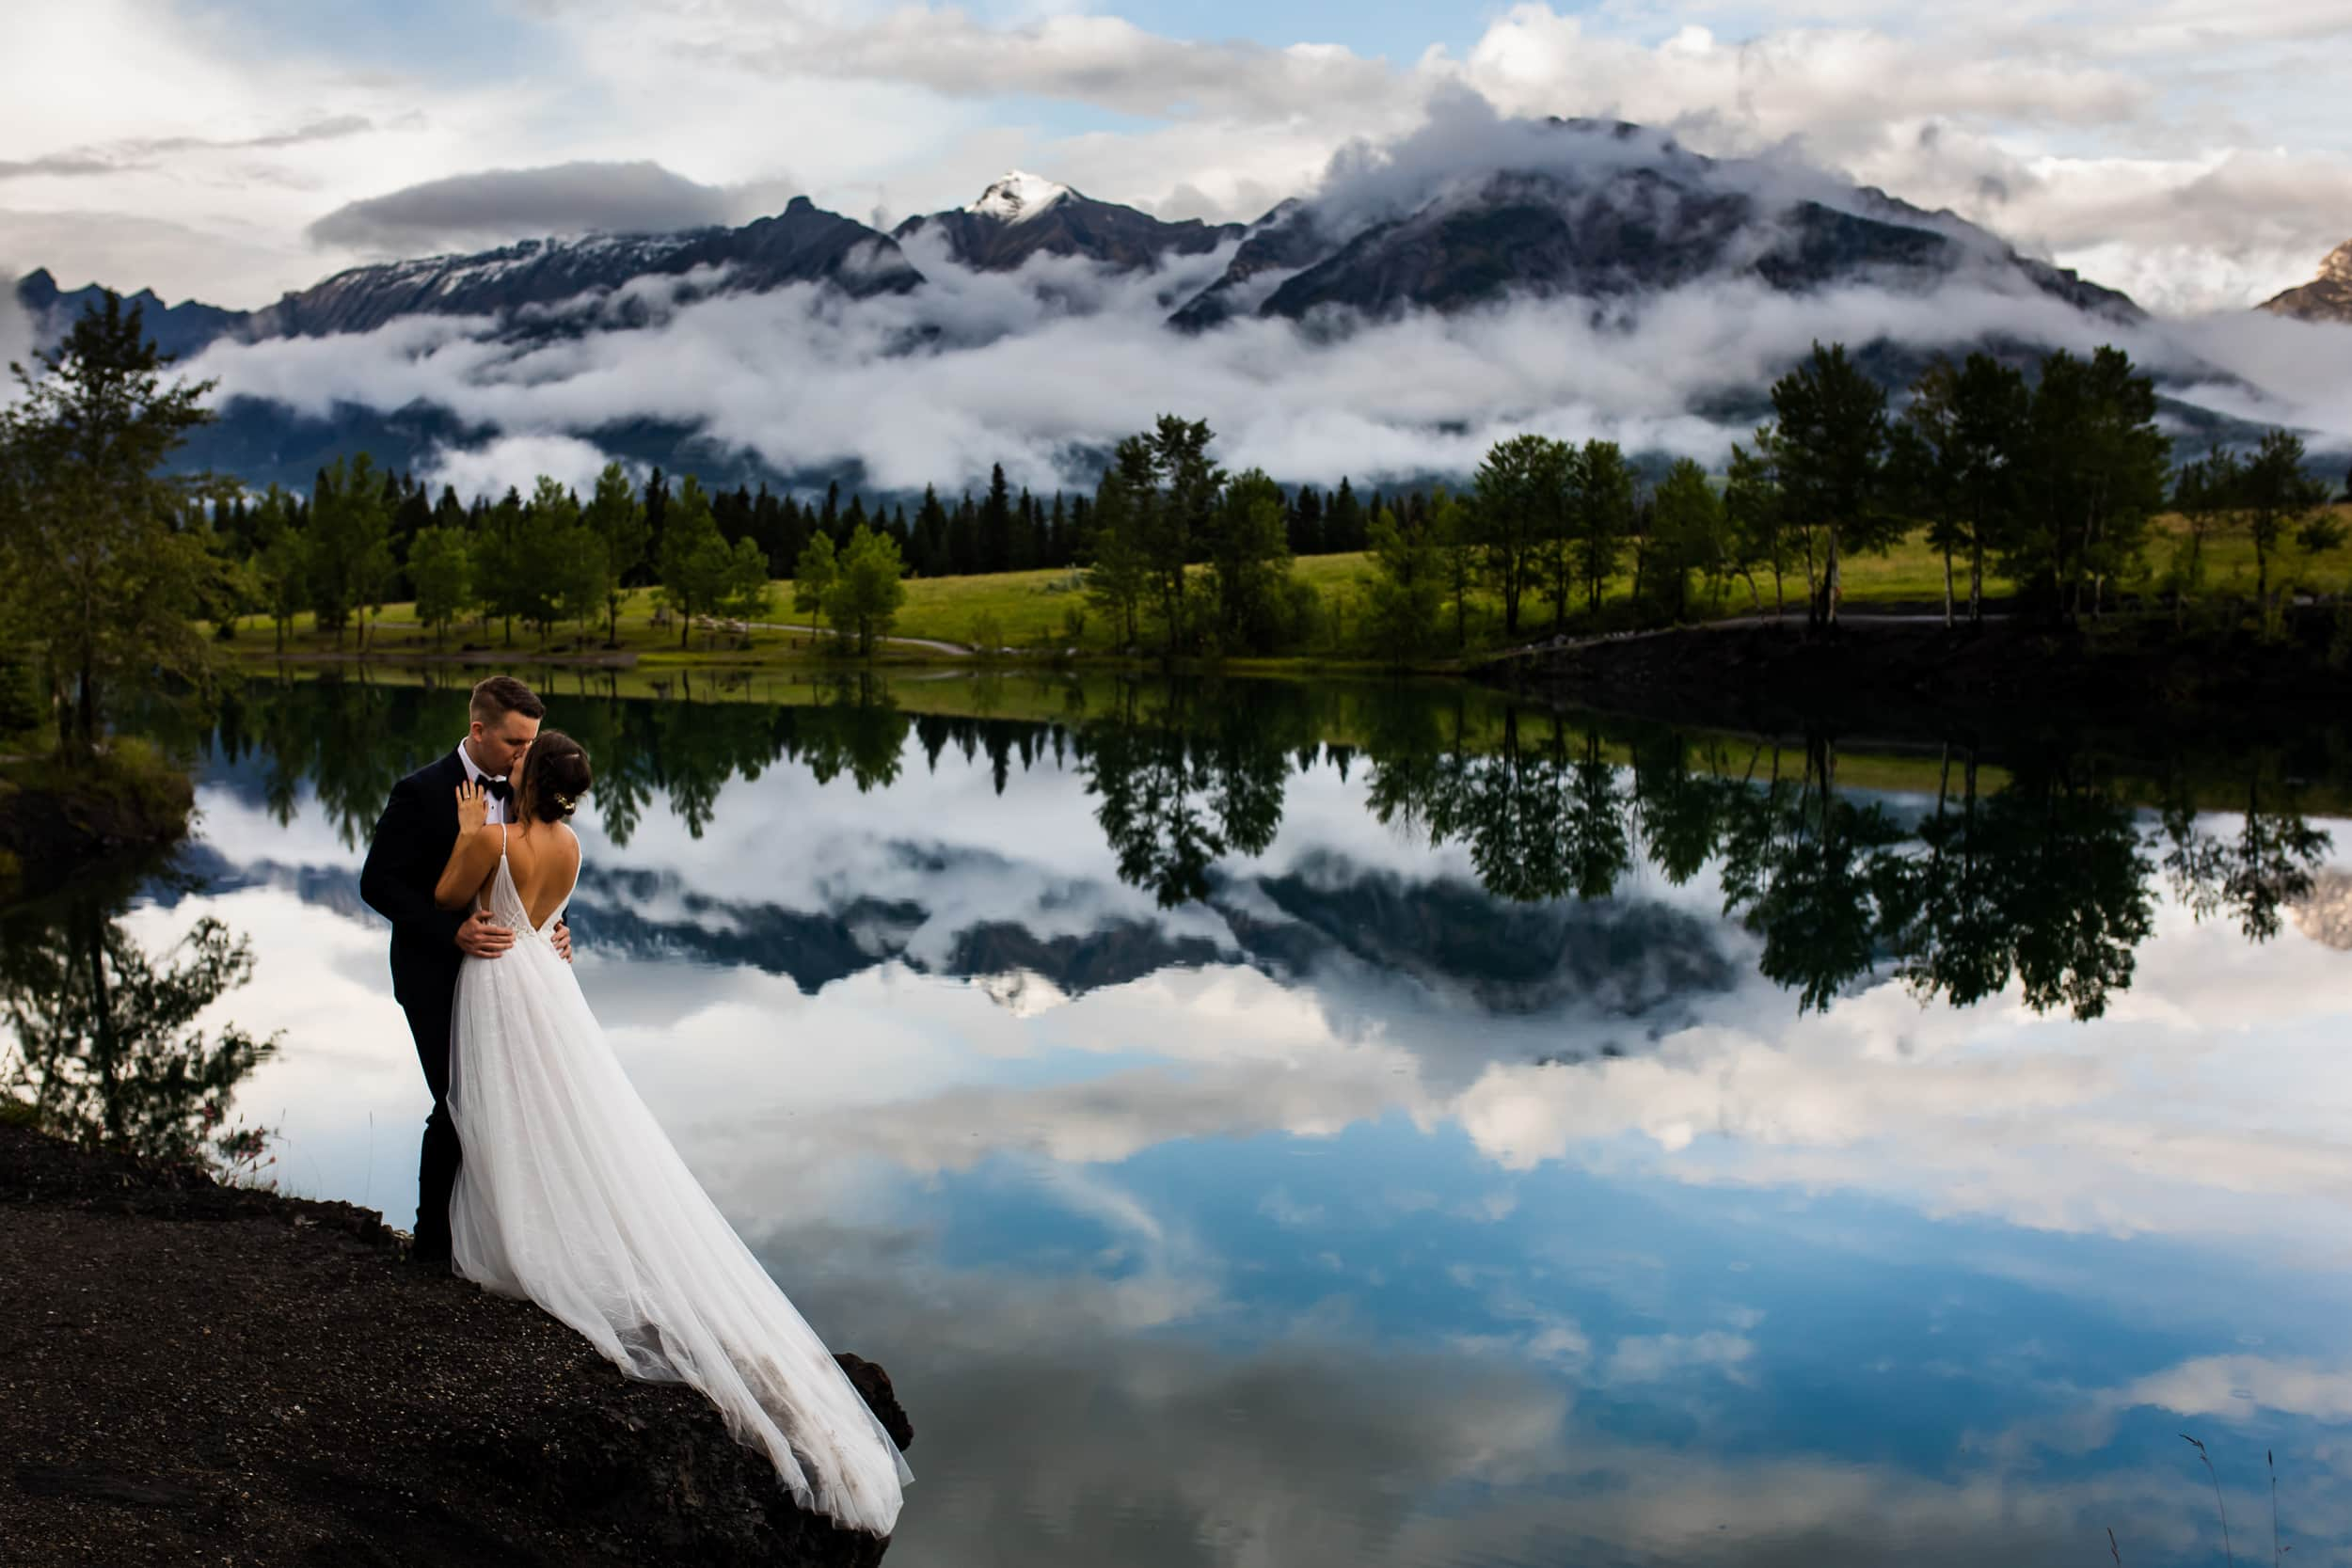 canmore-wedding-bride-groom-sunset-reflection-1.jpg